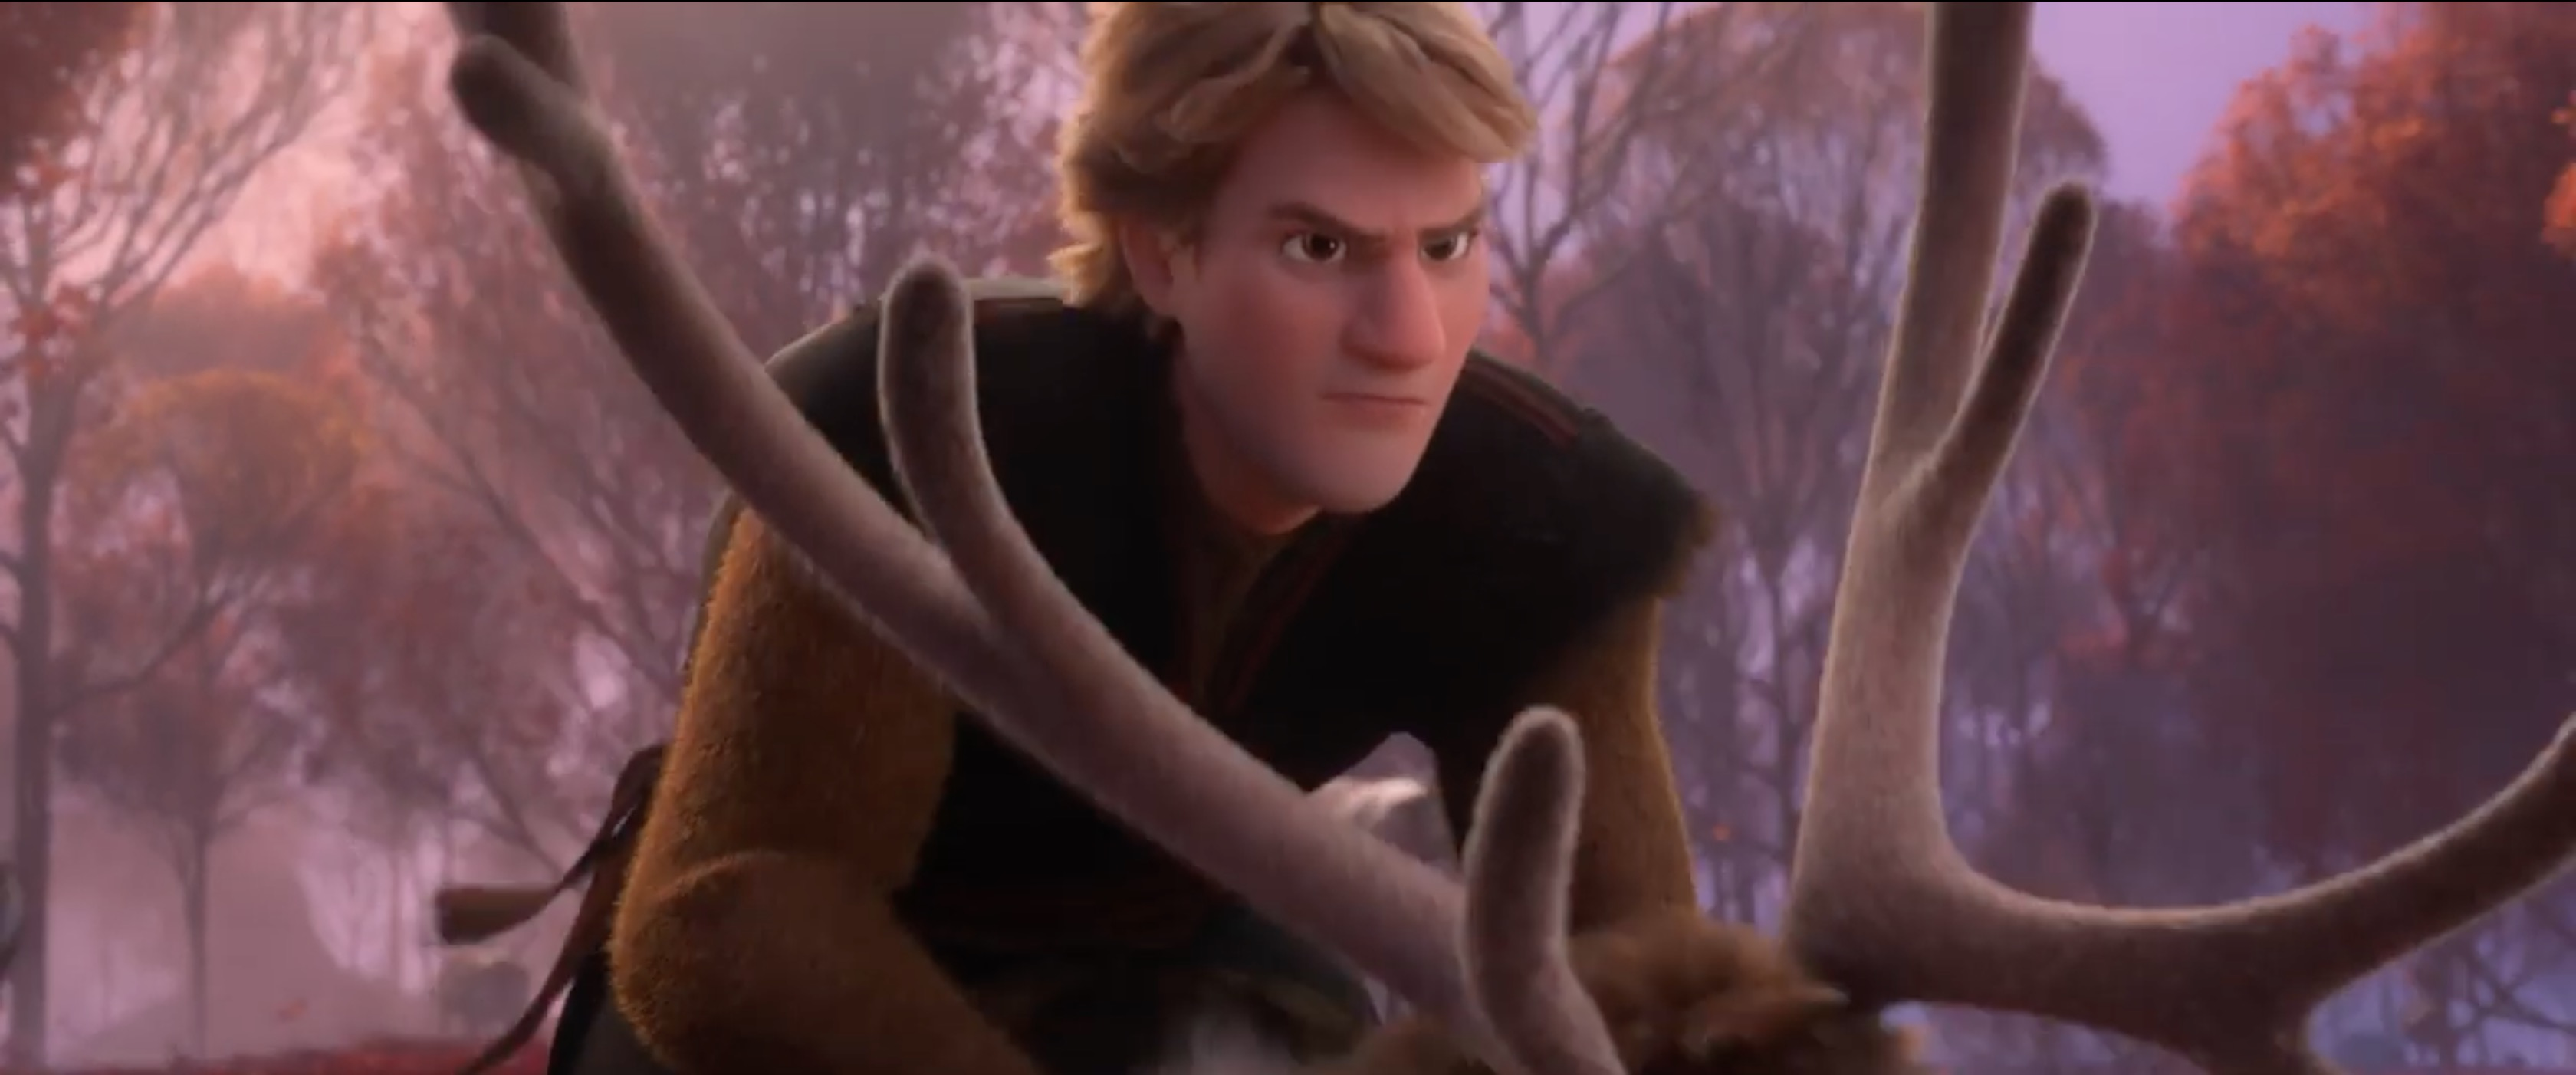 frozen 2 - photo #44